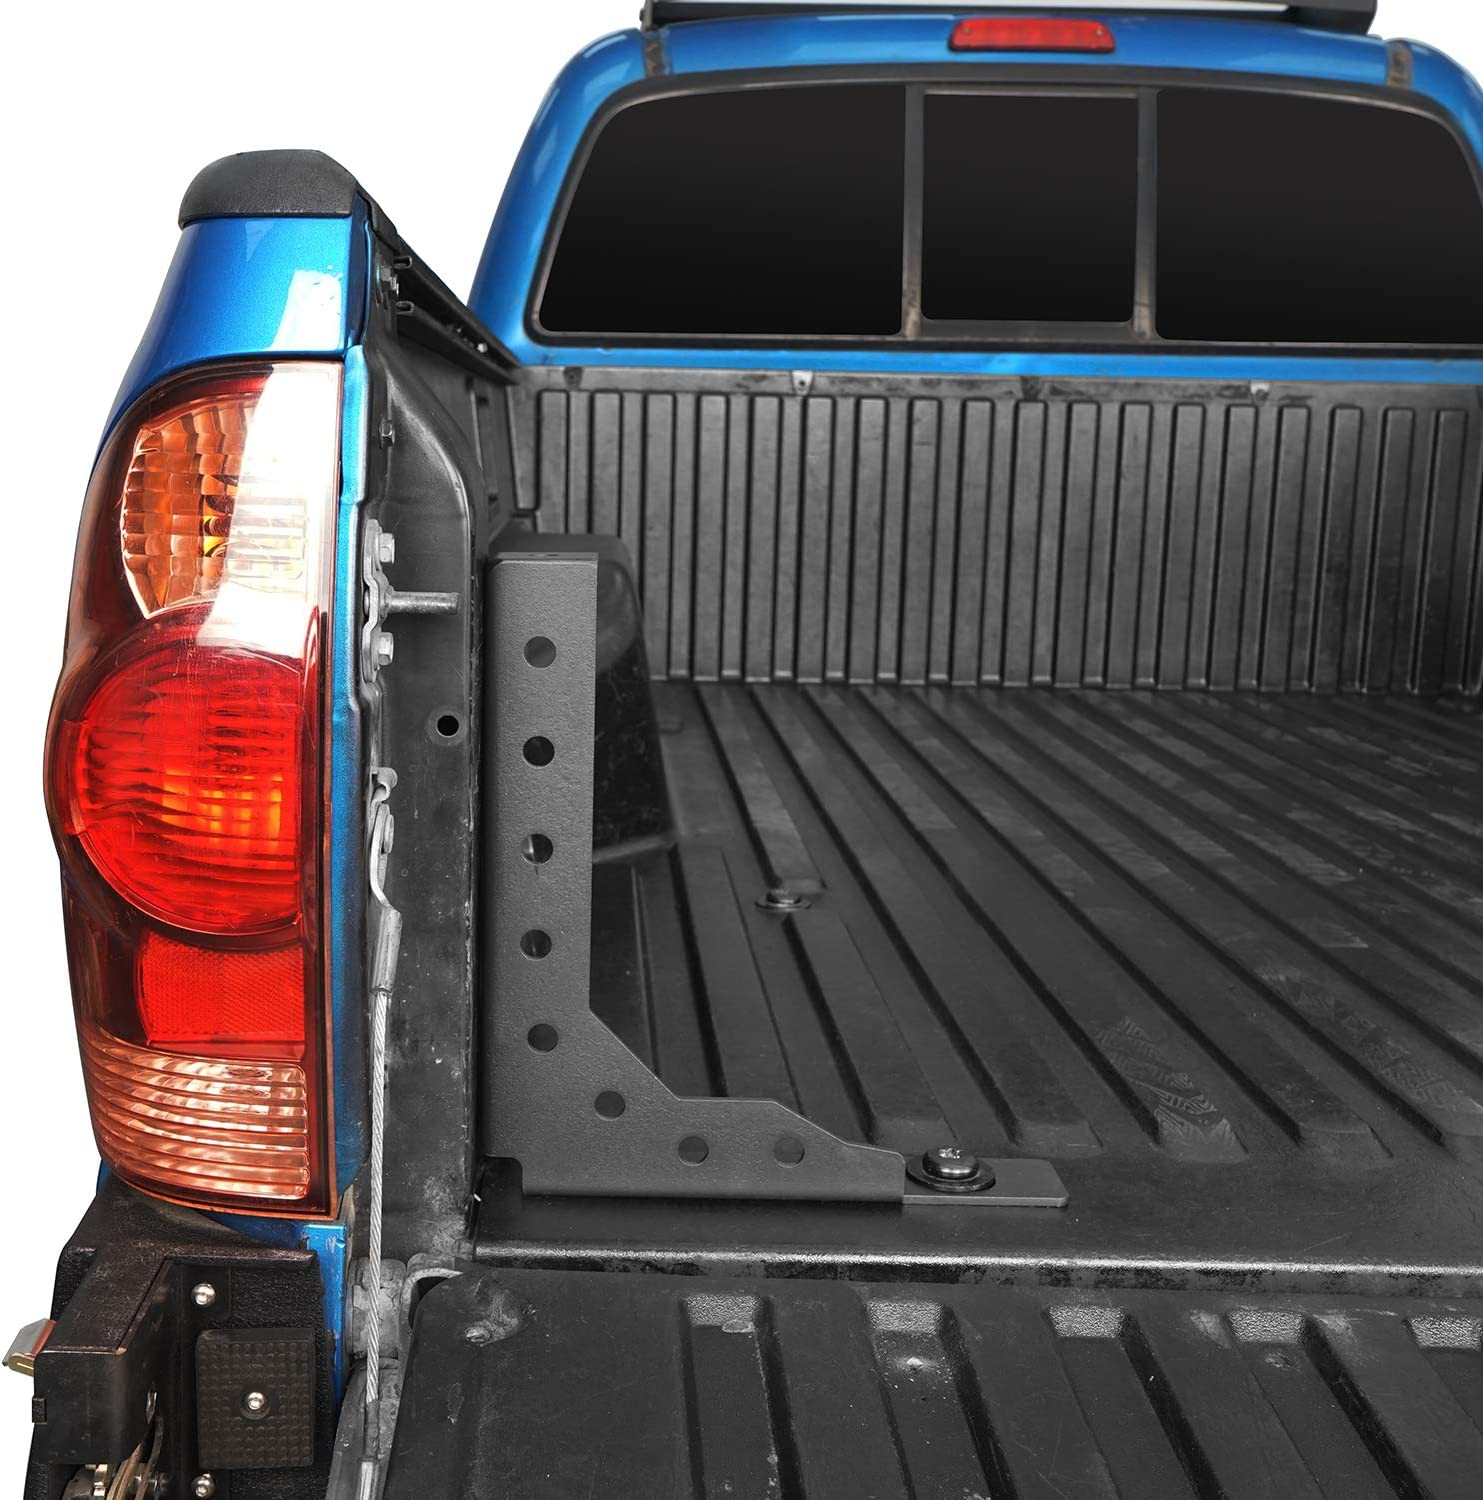 Pairs Hooke Road Tacoma Rear Bed Stiffener Brackets for 05-20 Toyota Tacoma 2nd /& 3rd Gen Pickup Truck